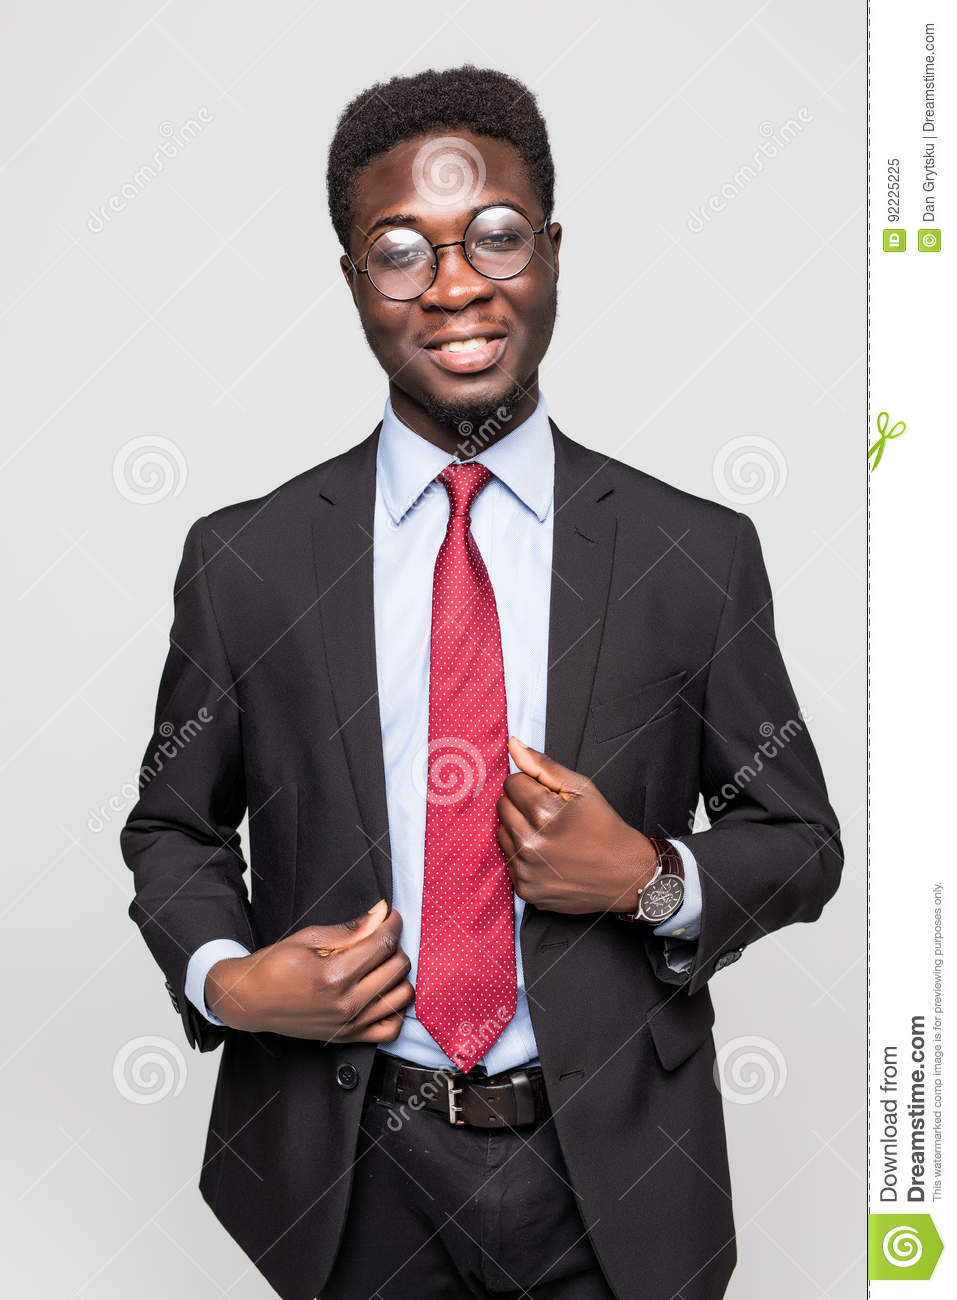 Studio fashion portrait of a handsome young African American businessman wearing a black suit and tie. Isolated on gray background